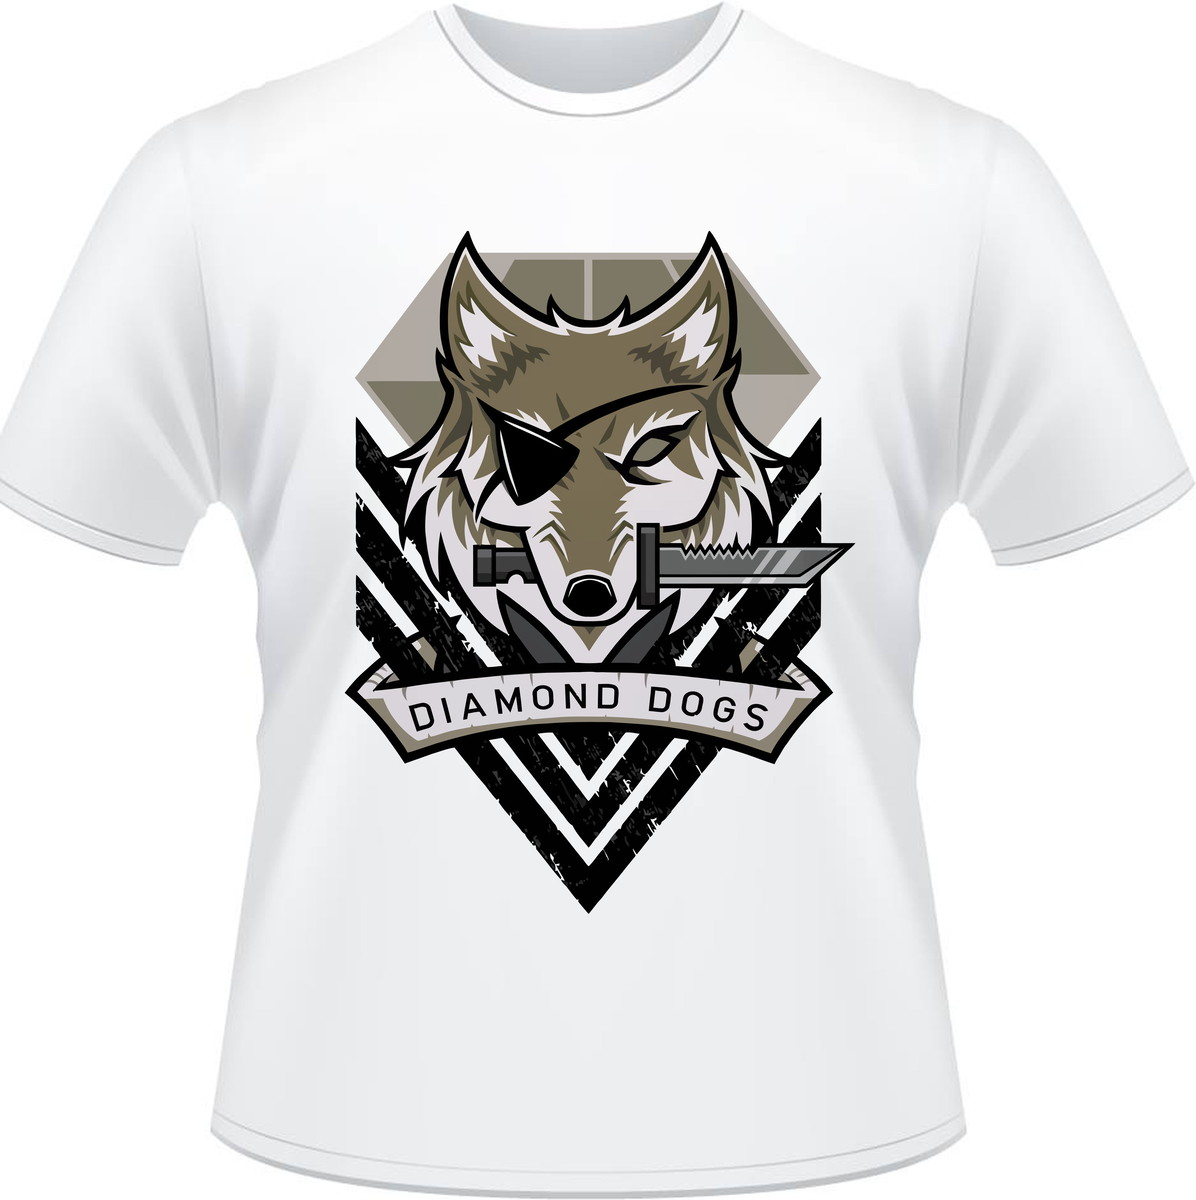 7759d5bdc13c9 Camiseta Metal Gear Solid V Diamond Dogs Masculina no Elo7 ...